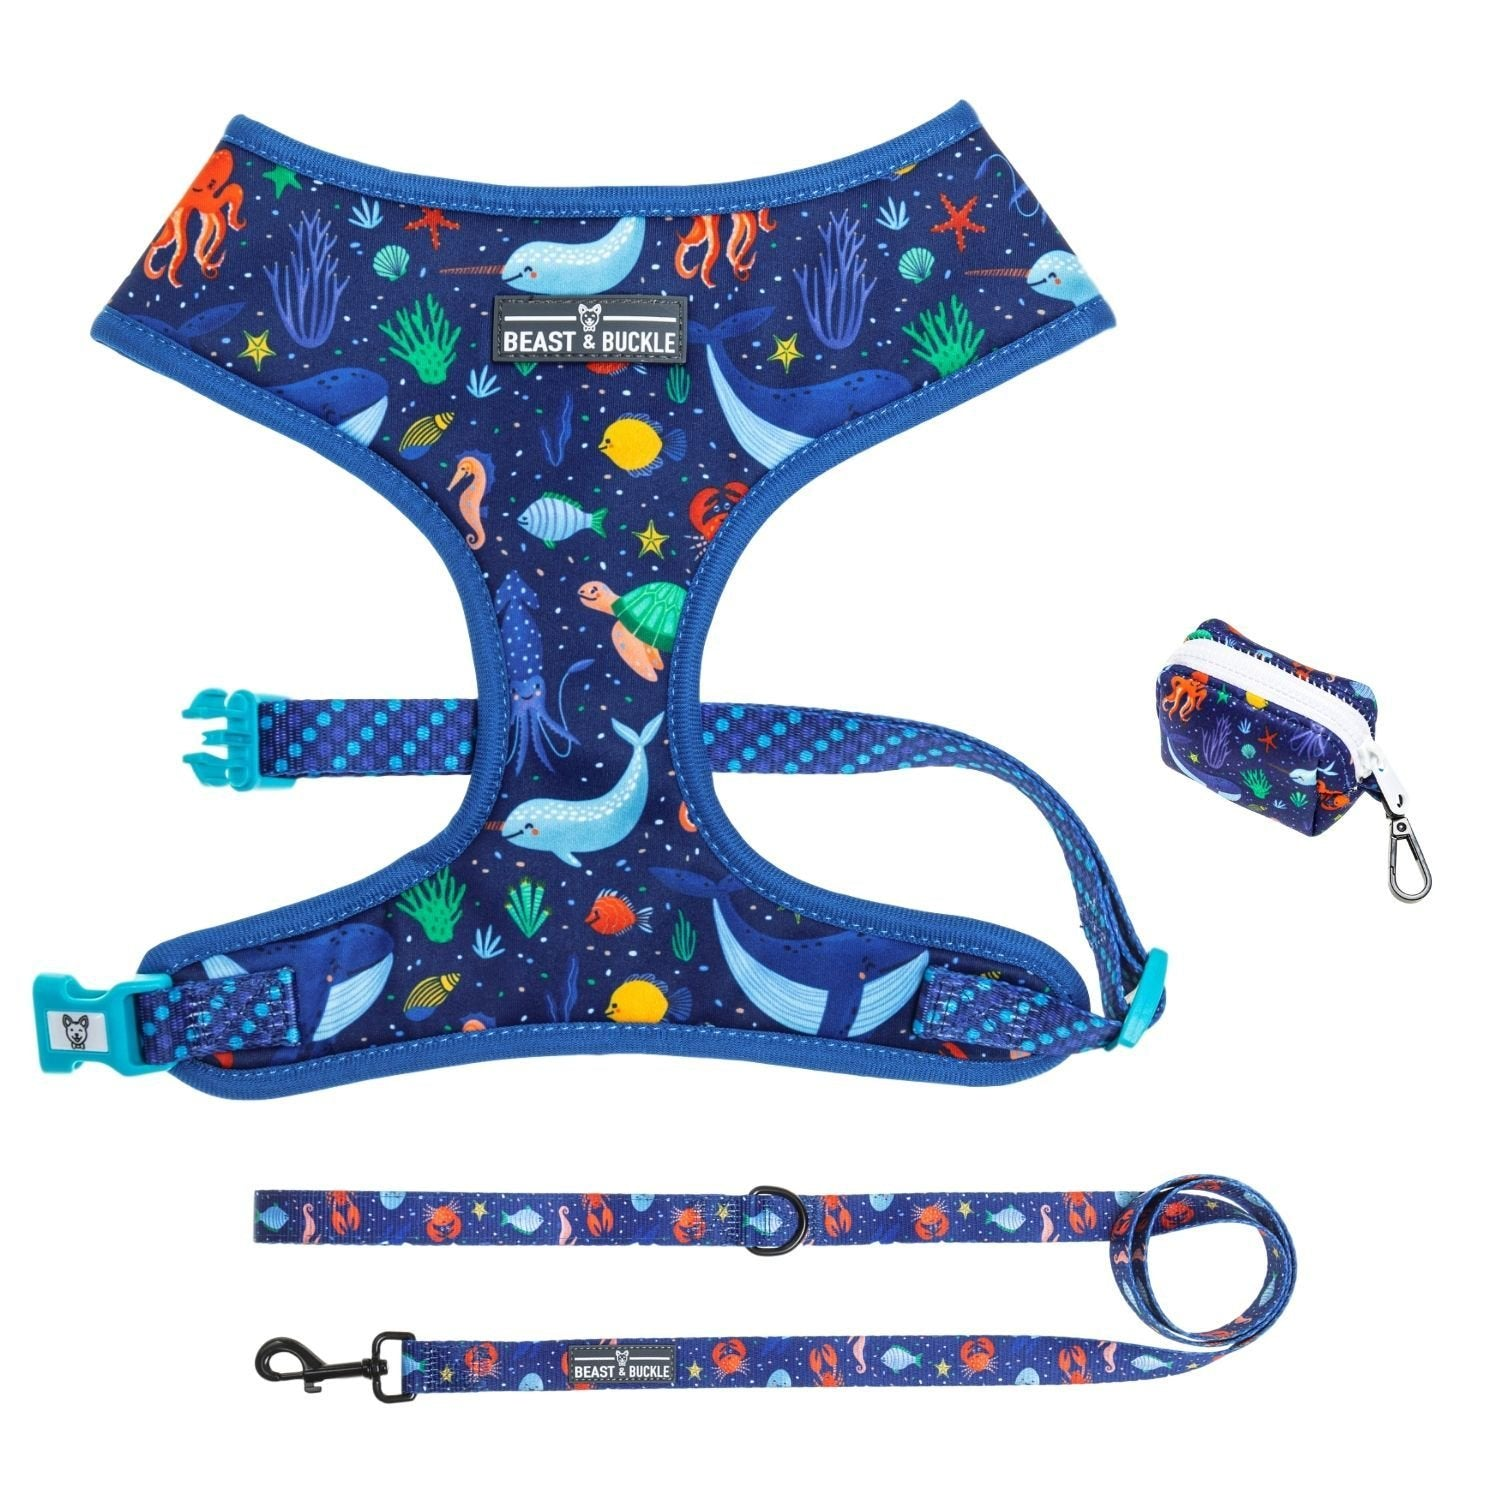 Under the Sea Walking Bundle - Beast & Buckle